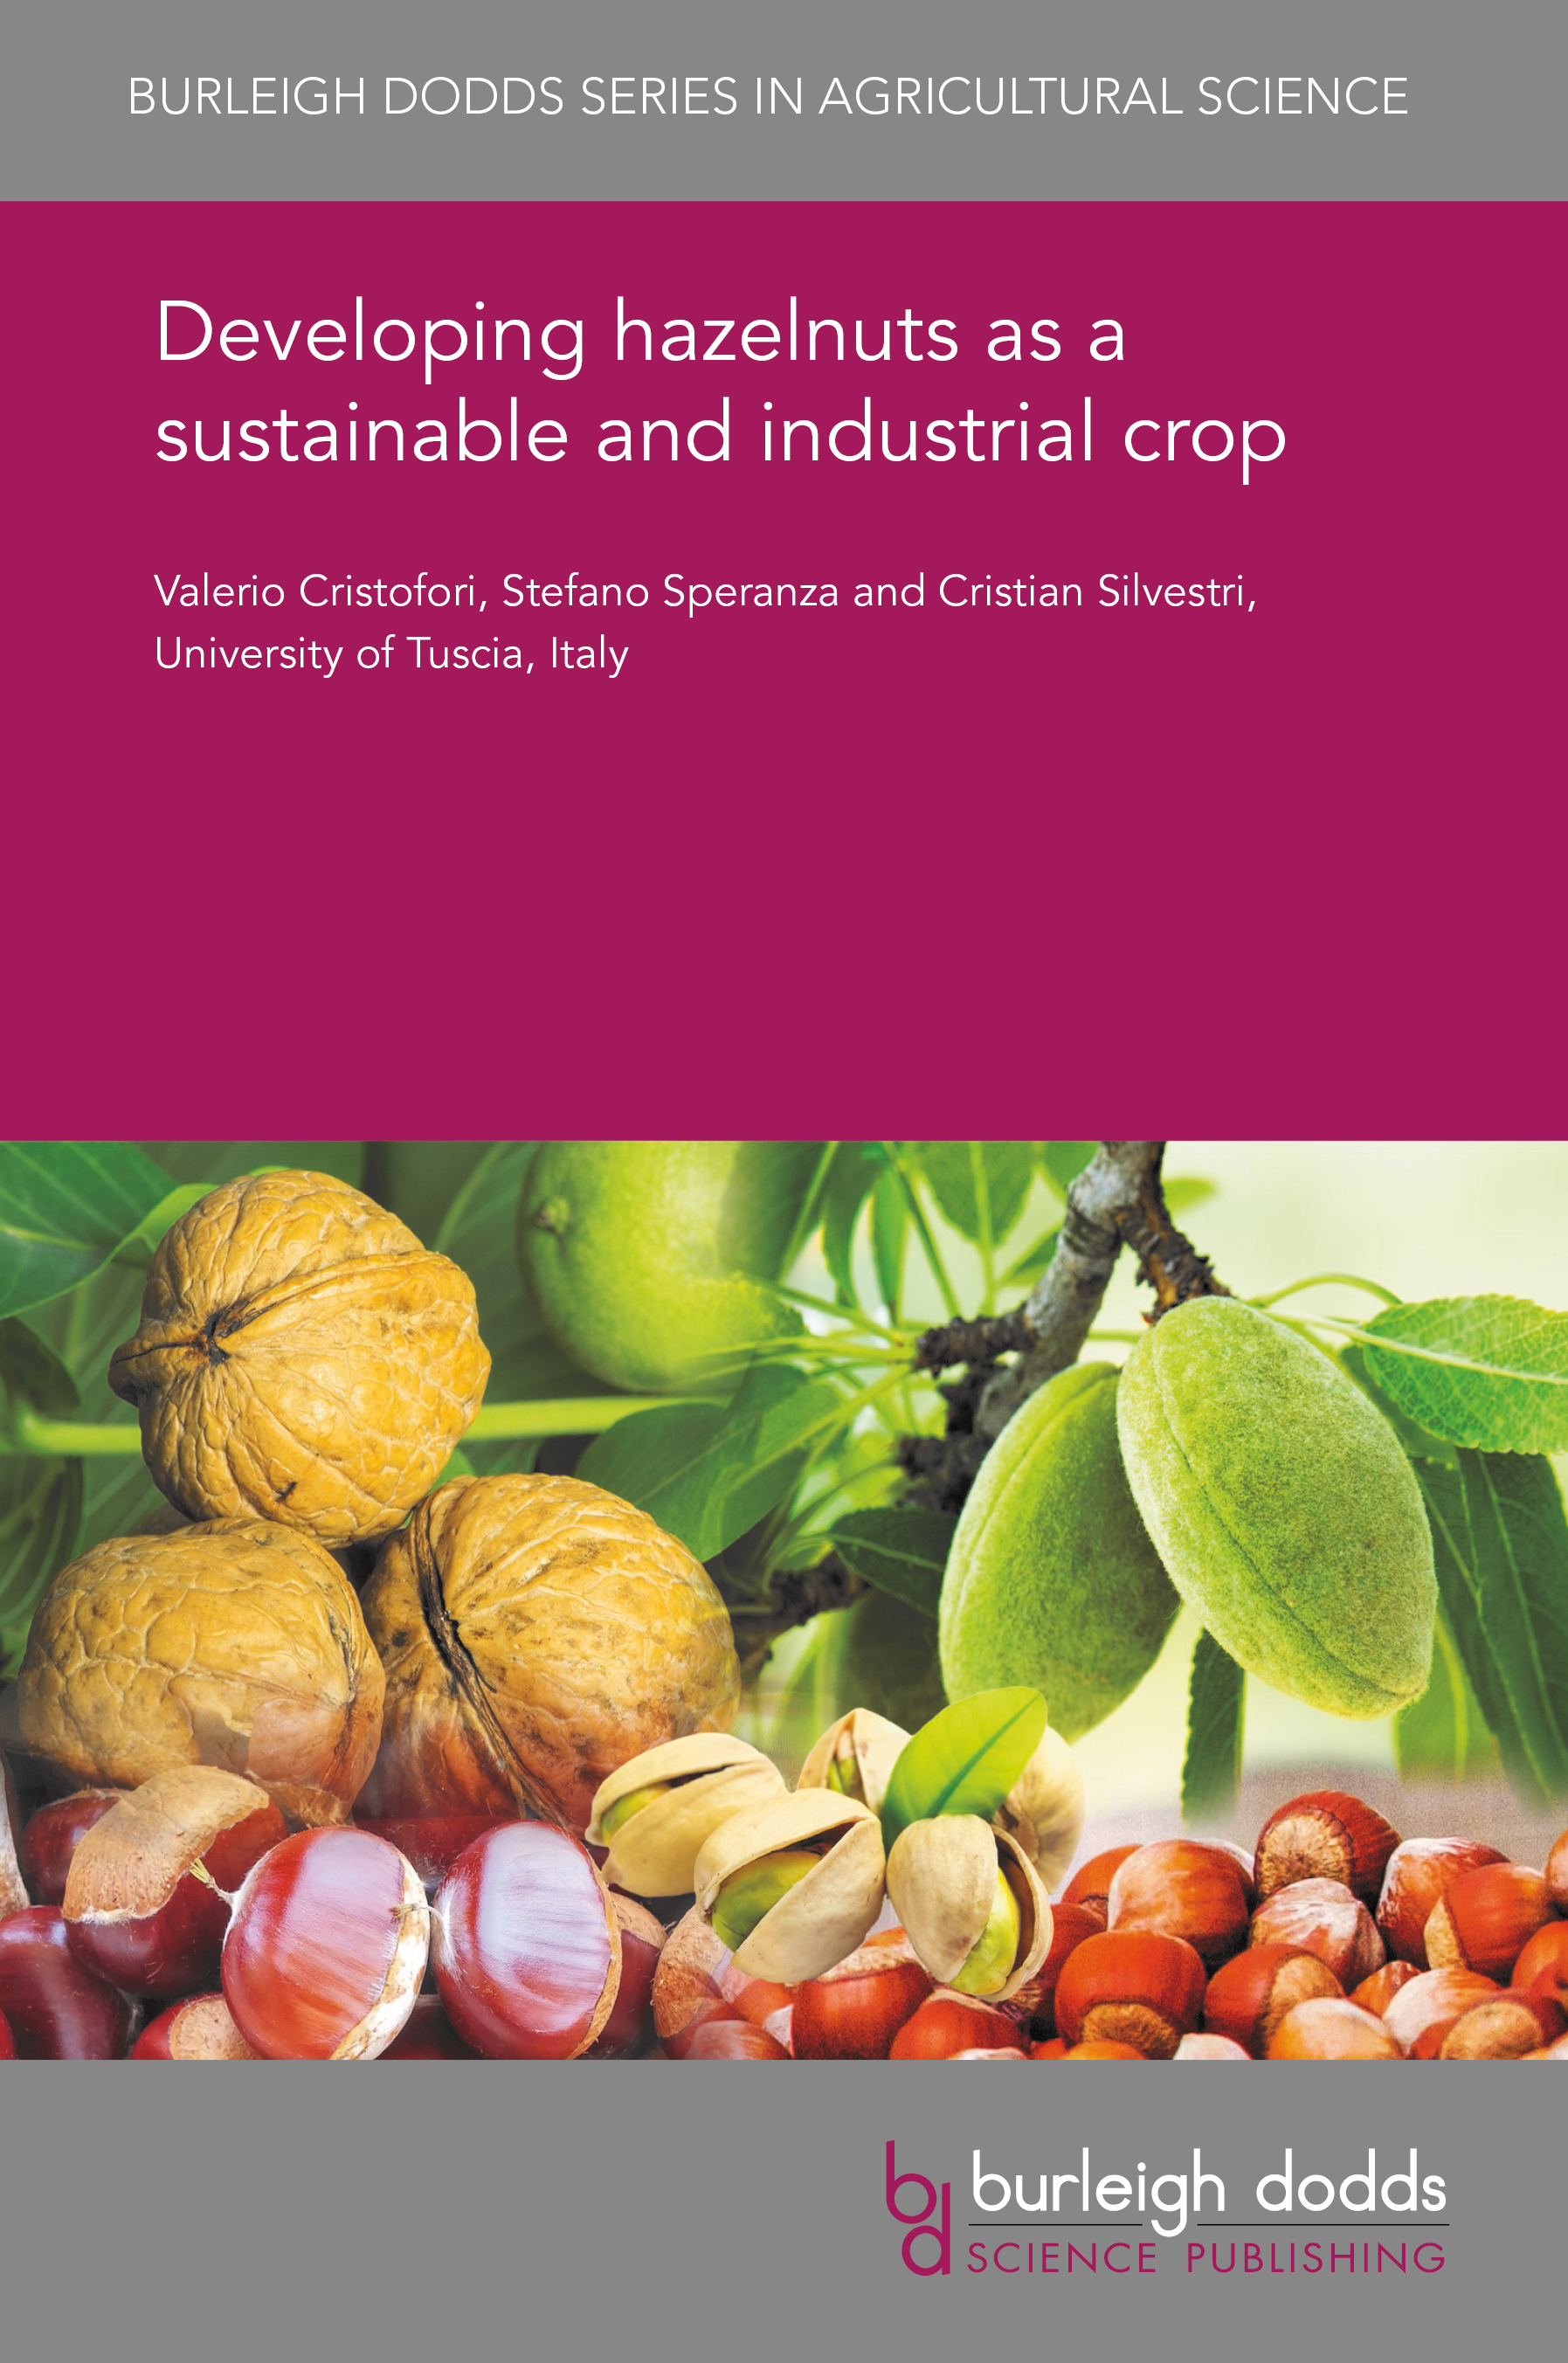 Burleigh Dodds Science Publishing | Agricultural Science in